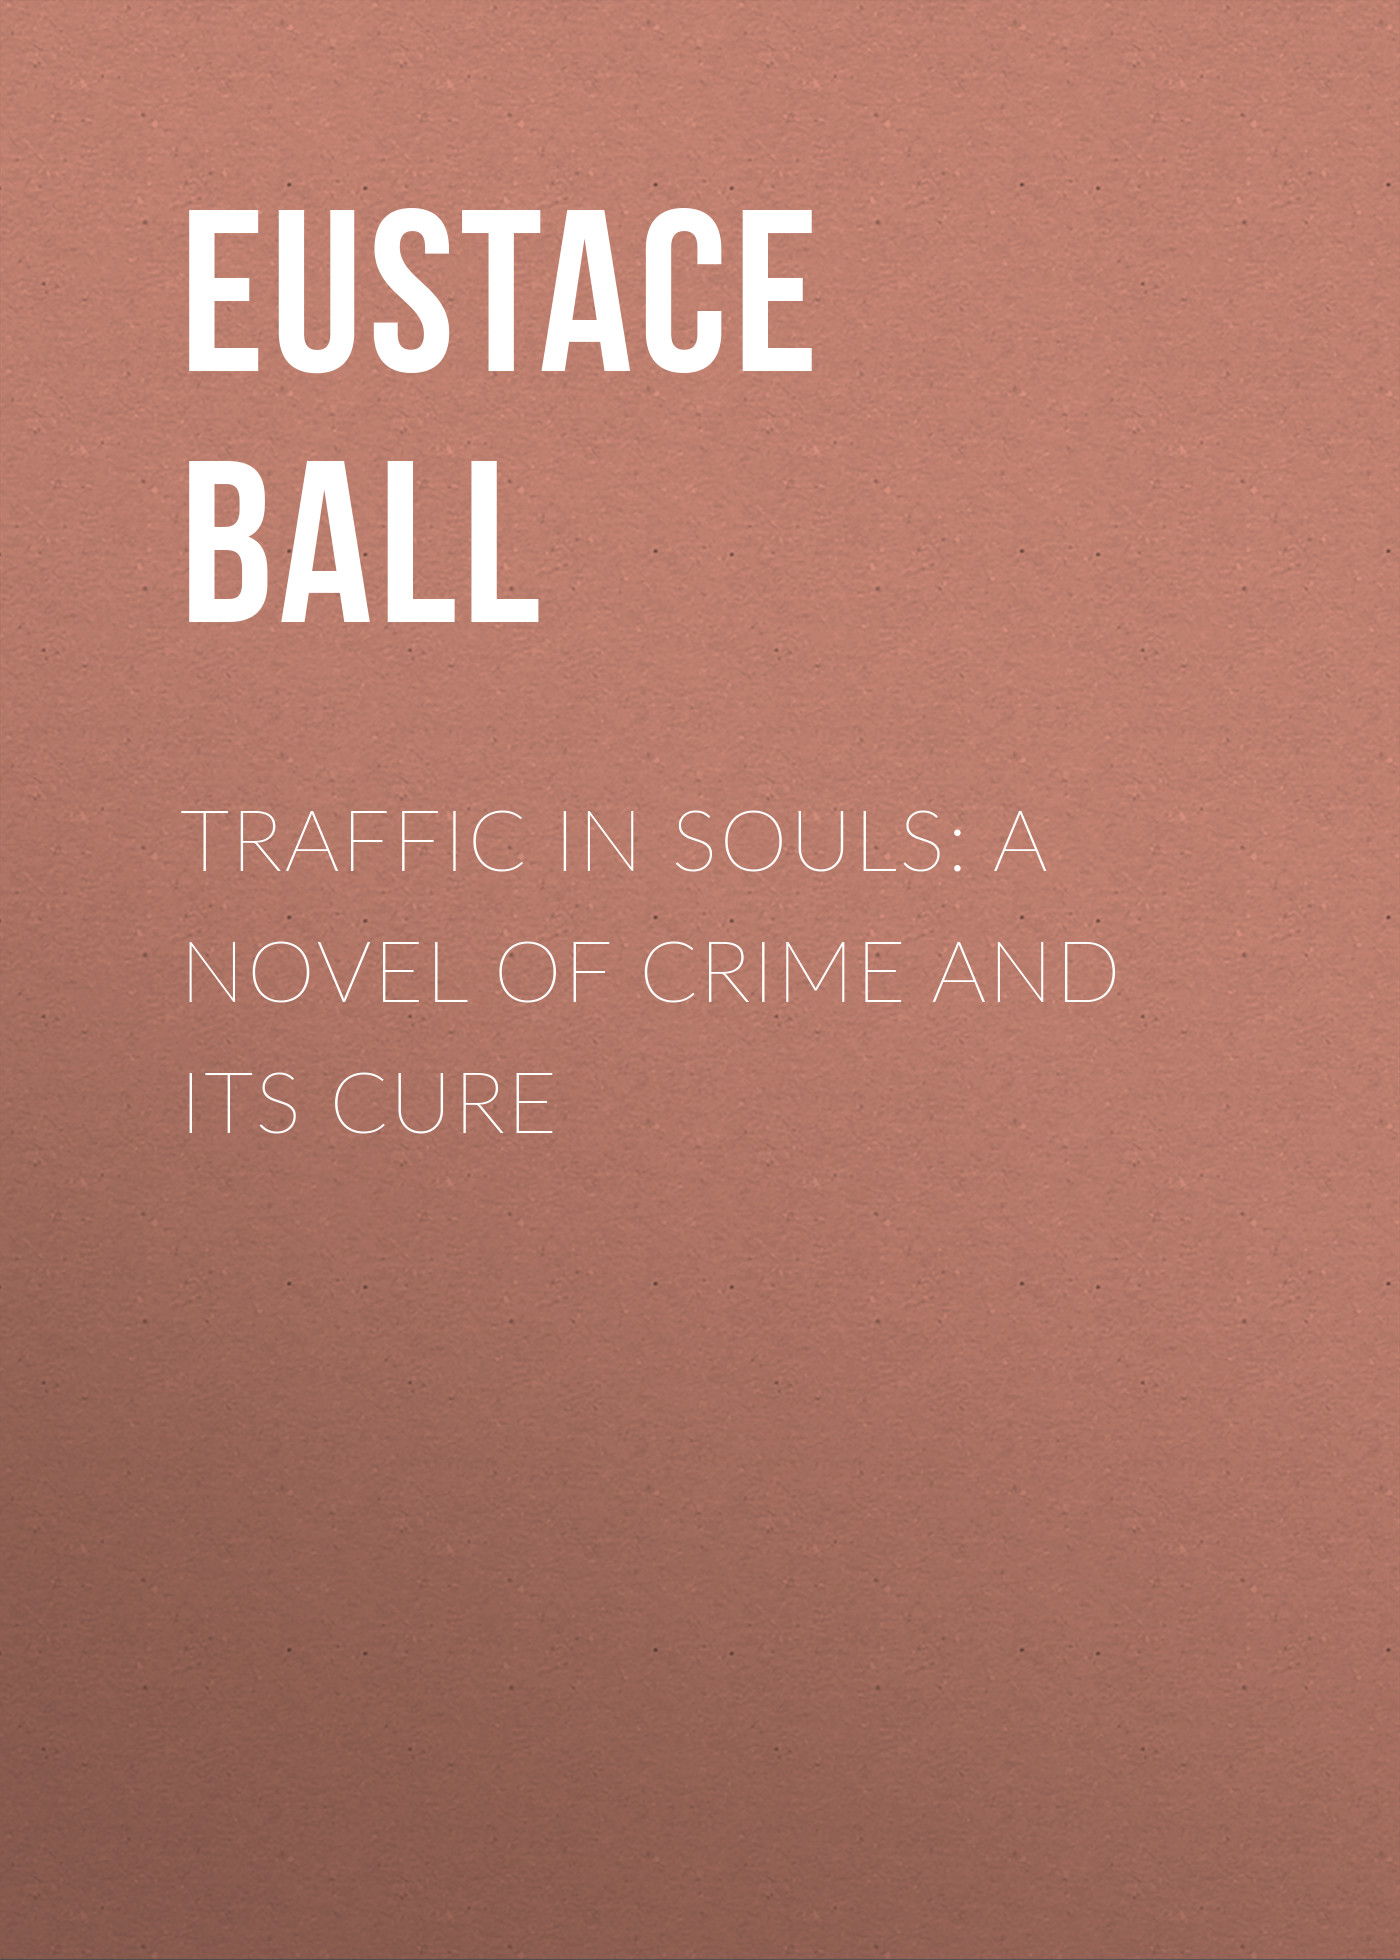 Ball Eustace Hale Traffic in Souls: A Novel of Crime and Its Cure thomas bartlett consumption its causes prevention and cure